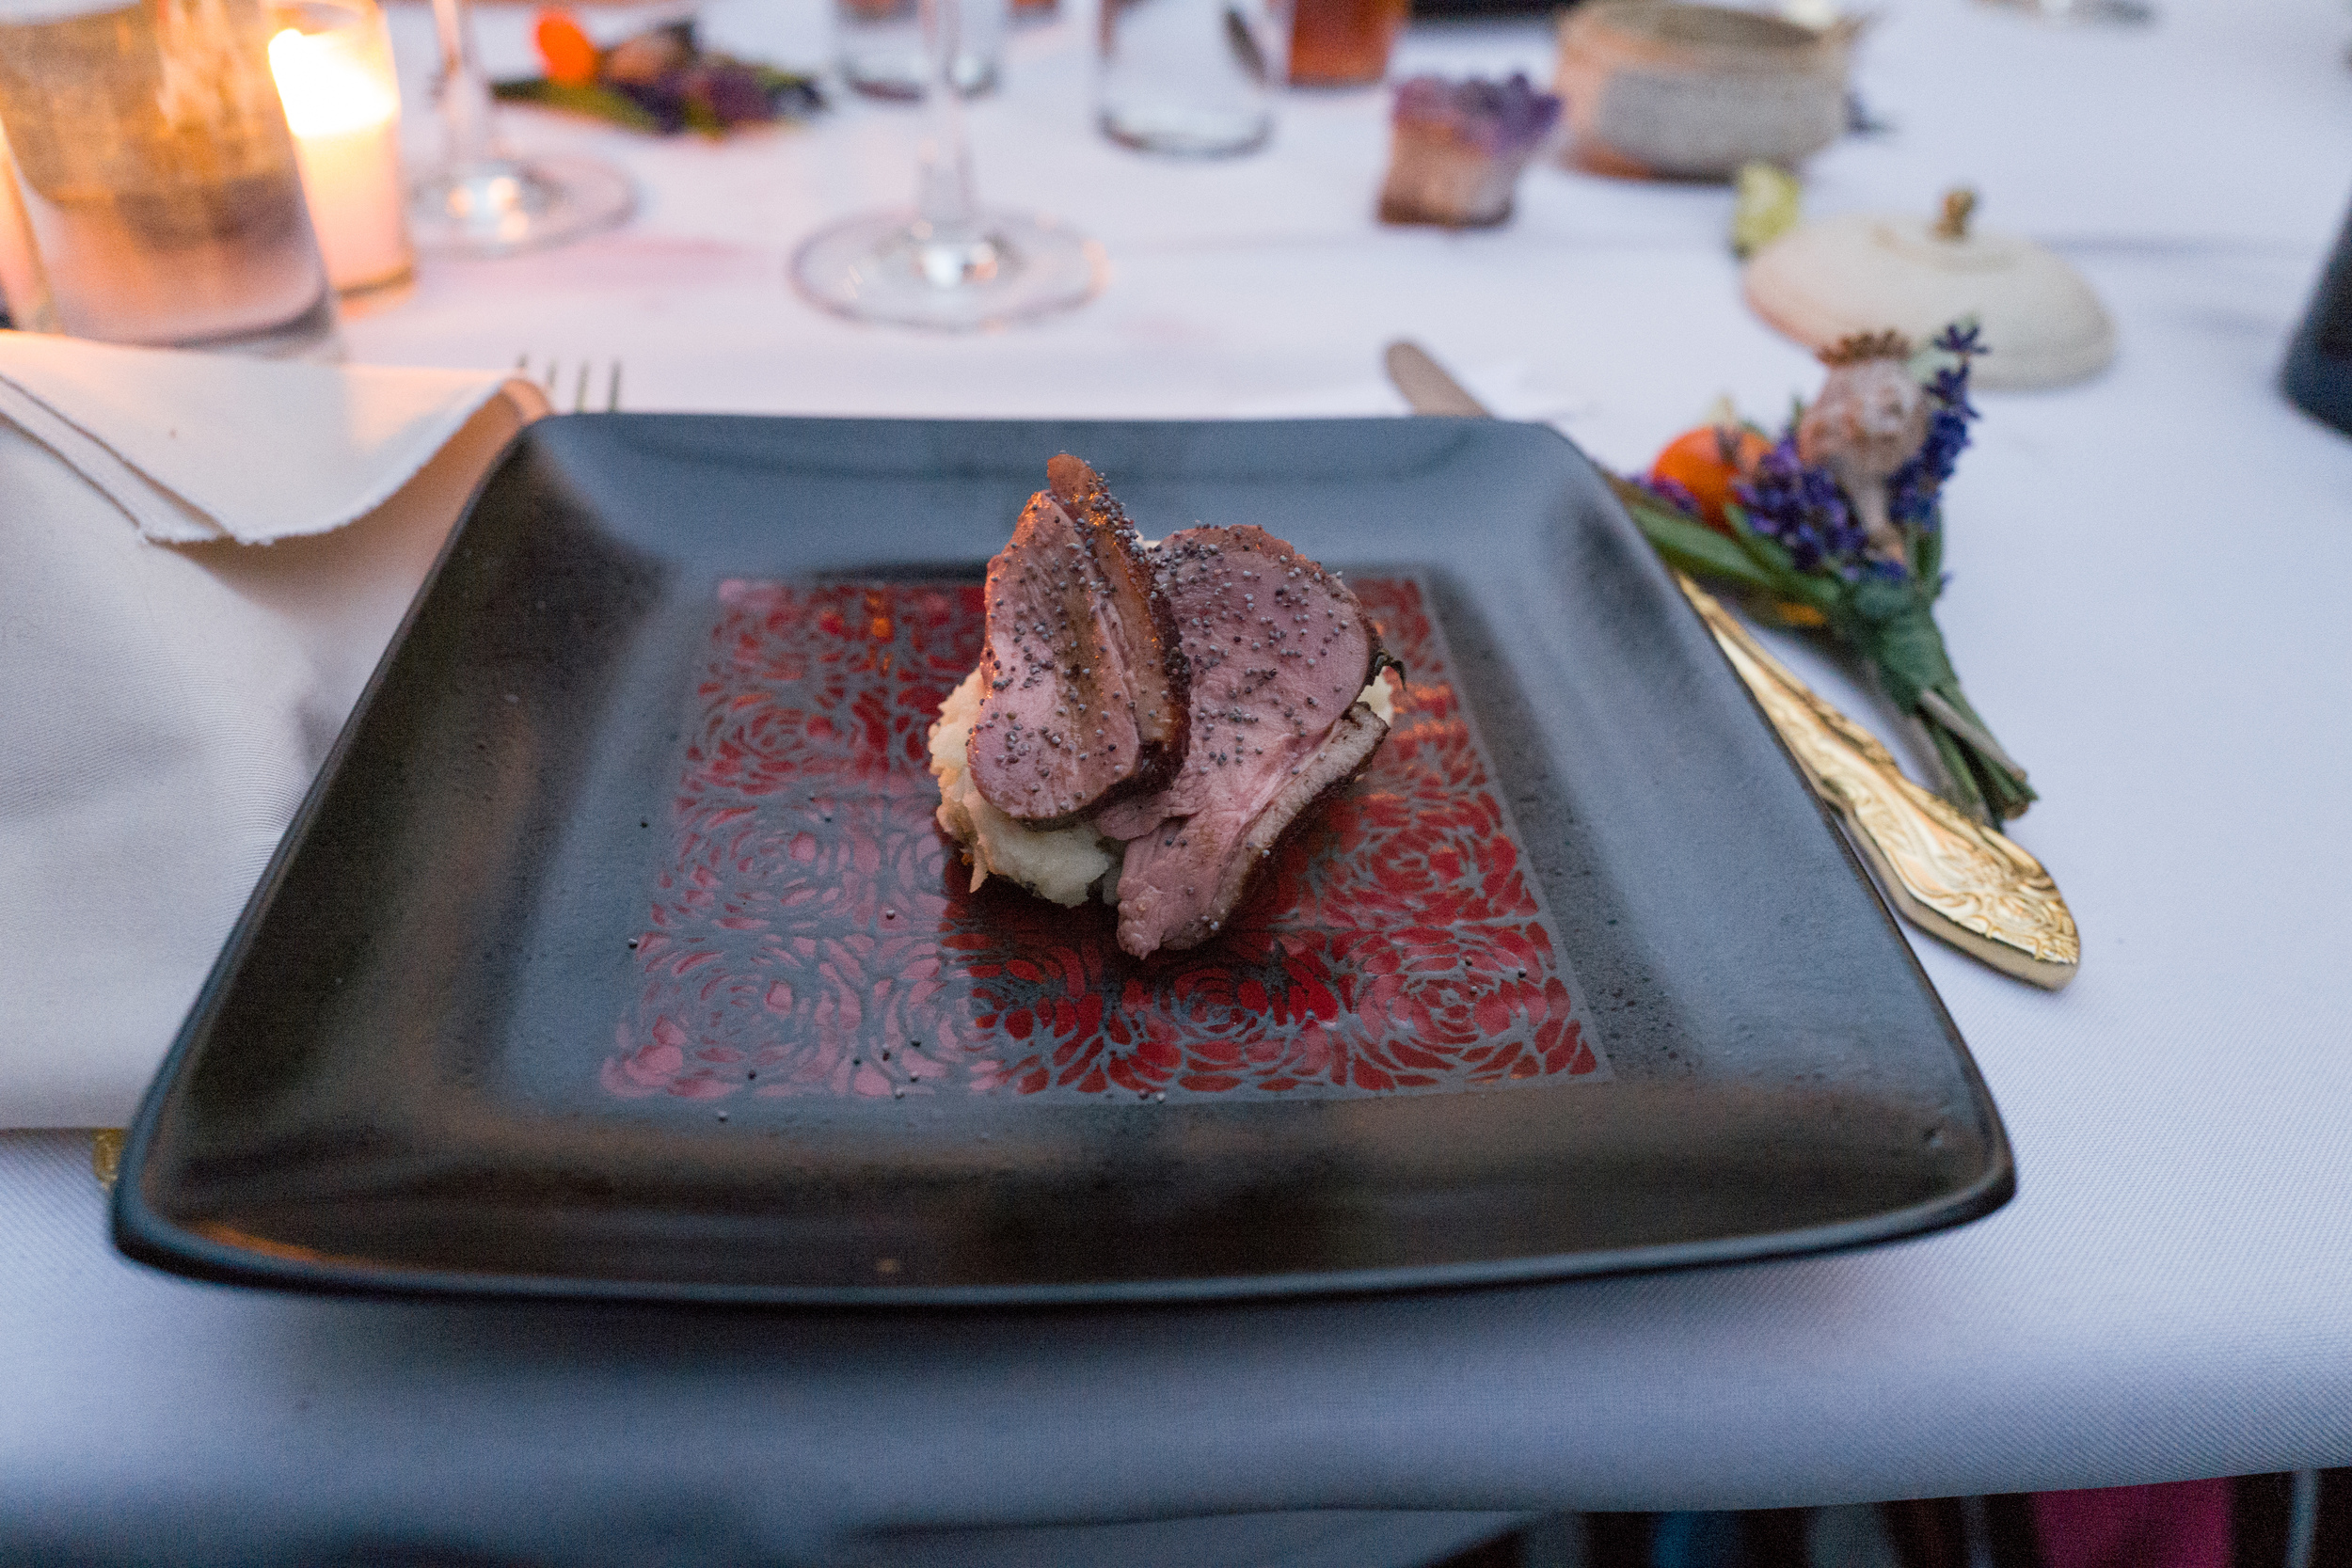 Peking Style Duck Breast on Mashed potatoes draped with toasted poppy seeds. Photo by Victoria Smith.